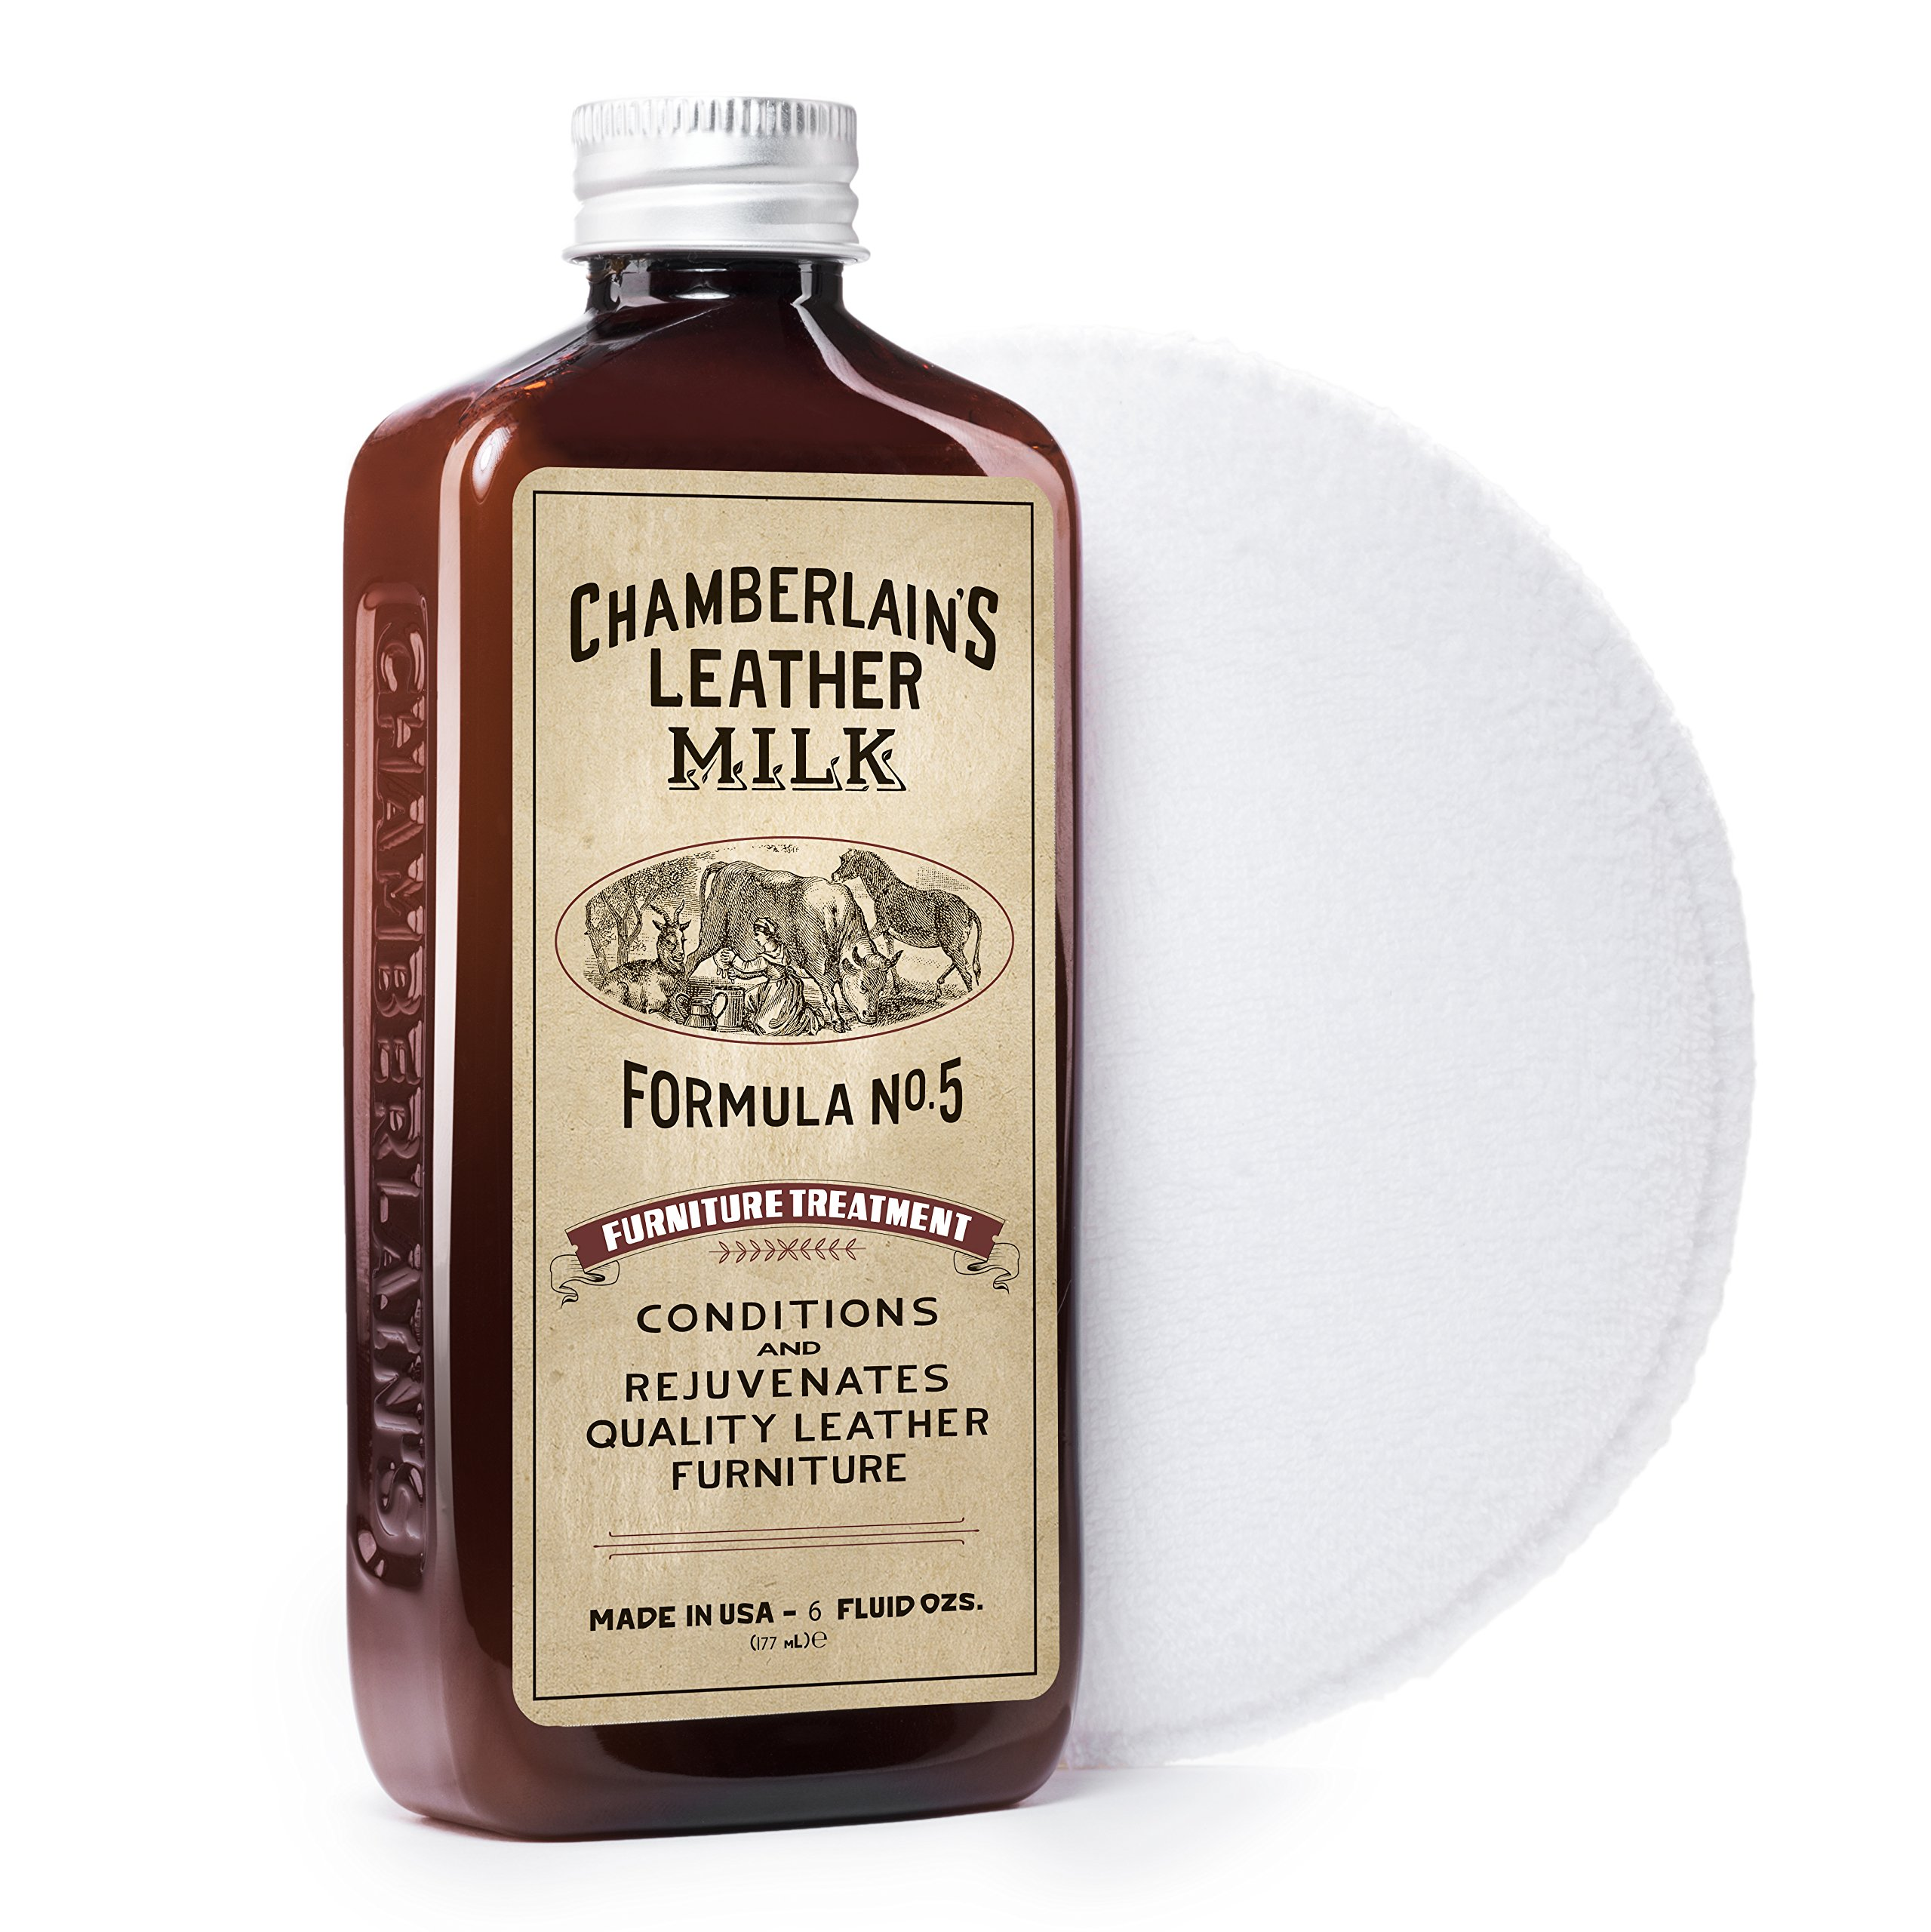 Leather Milk Leather Furniture Conditioner and Cleaner - Furniture Treatment No. 5 - For All Natural, Non-Toxic Leather Care. Made in the USA. 2 Sizes. Includes Premium Applicator Pad! by Chamberlain's Leather Milk (Image #4)